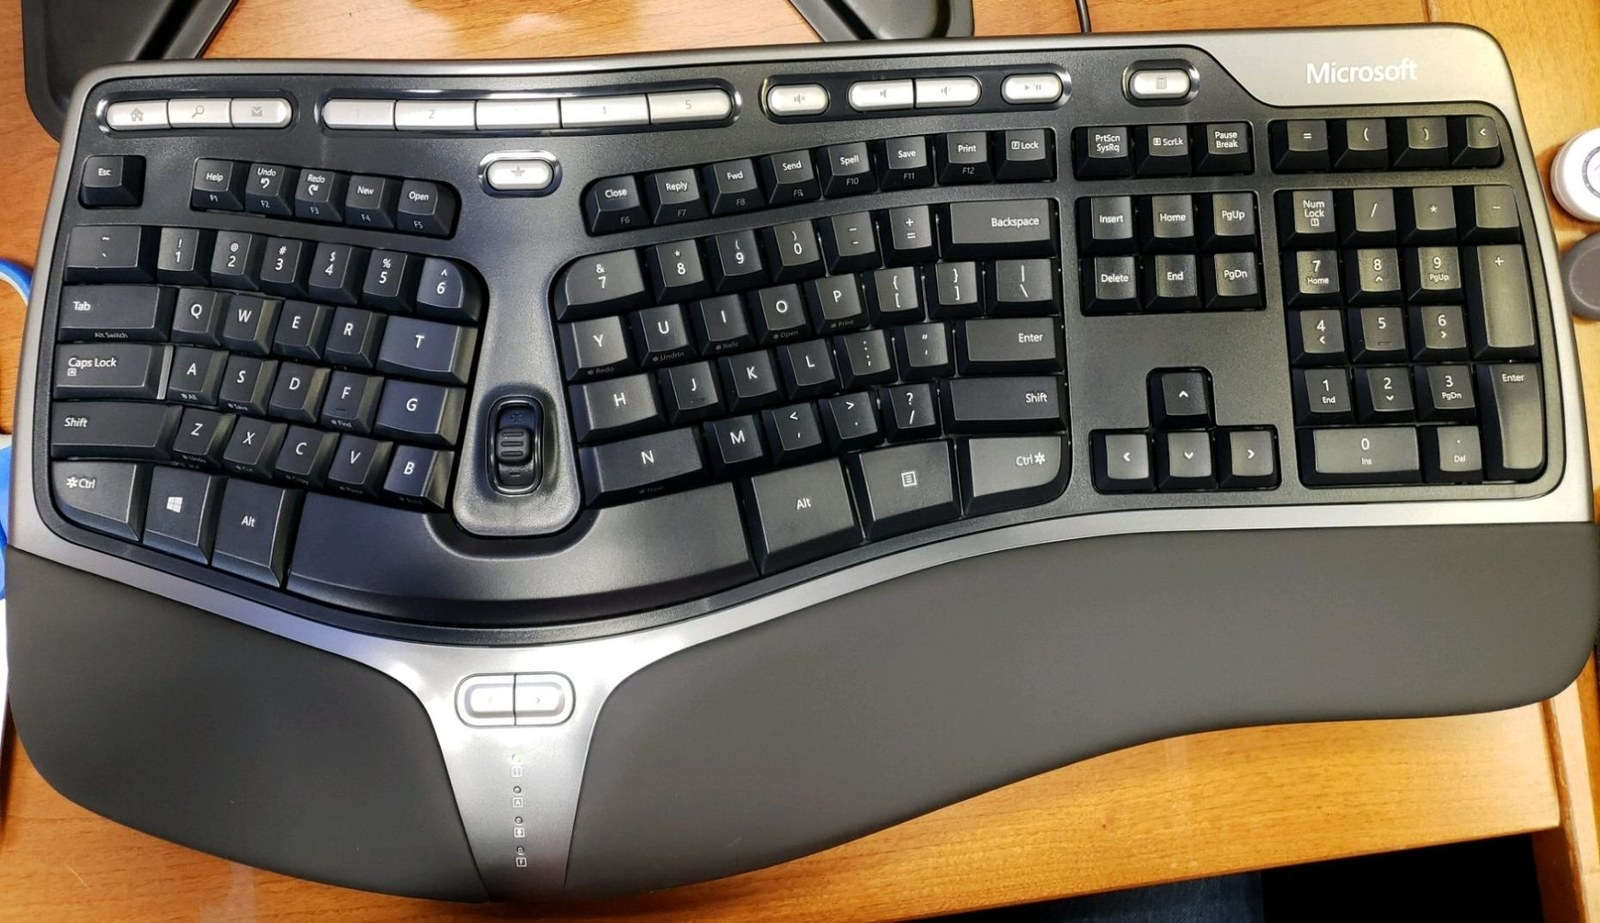 Reviewer photo of the split keyboard, which has a curved wrist rest